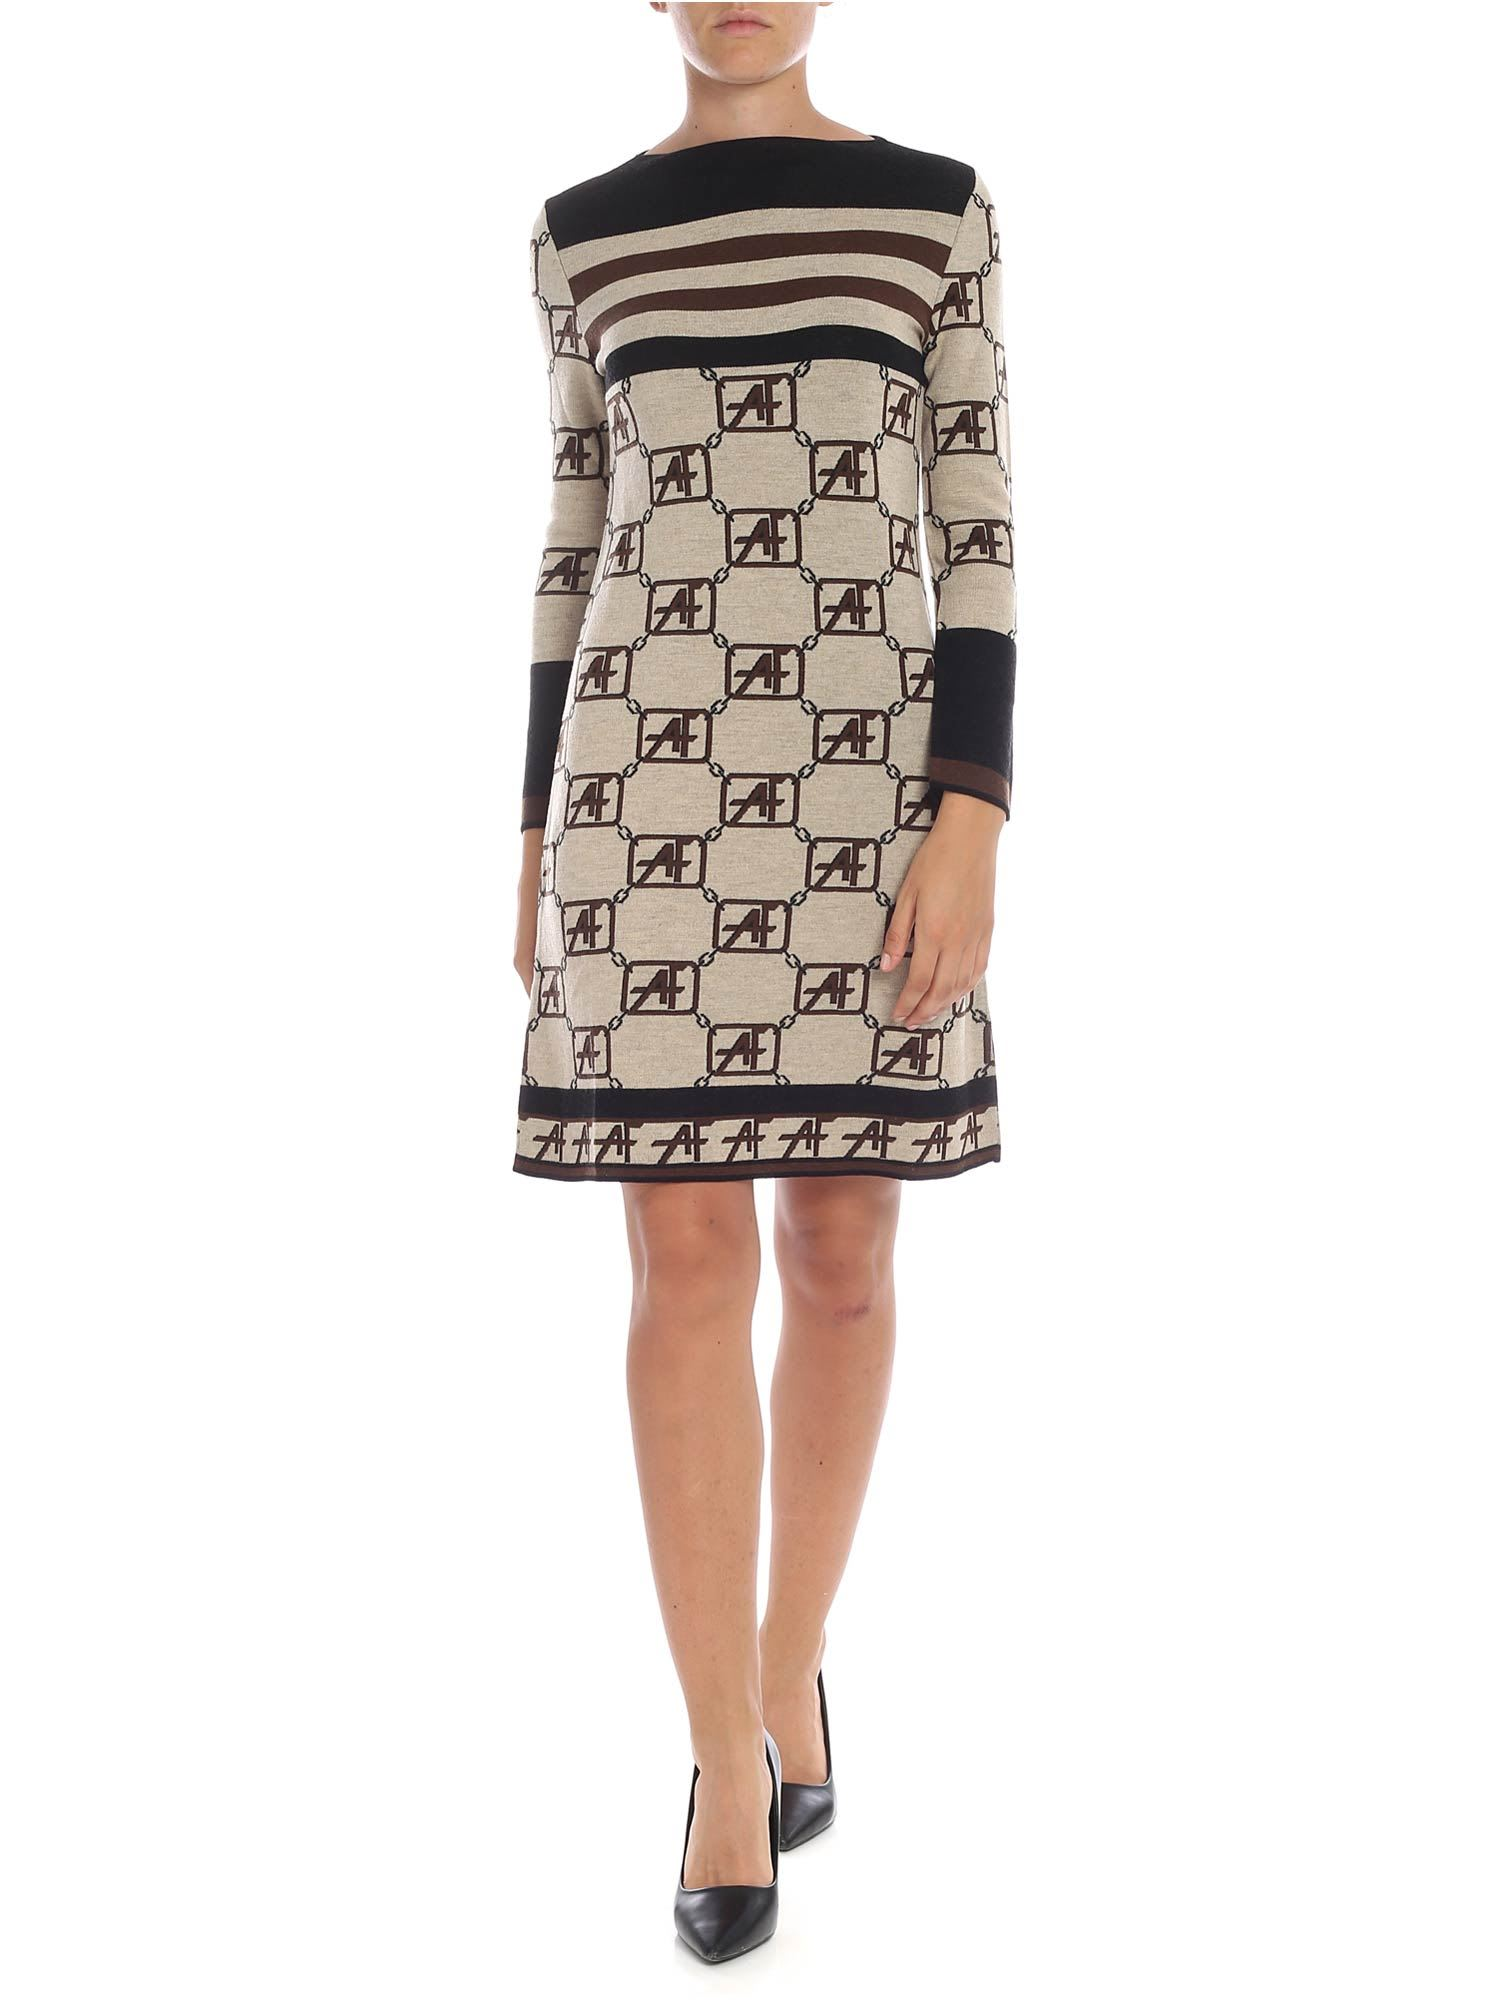 Alberta Ferretti – Monogram Motif Dress